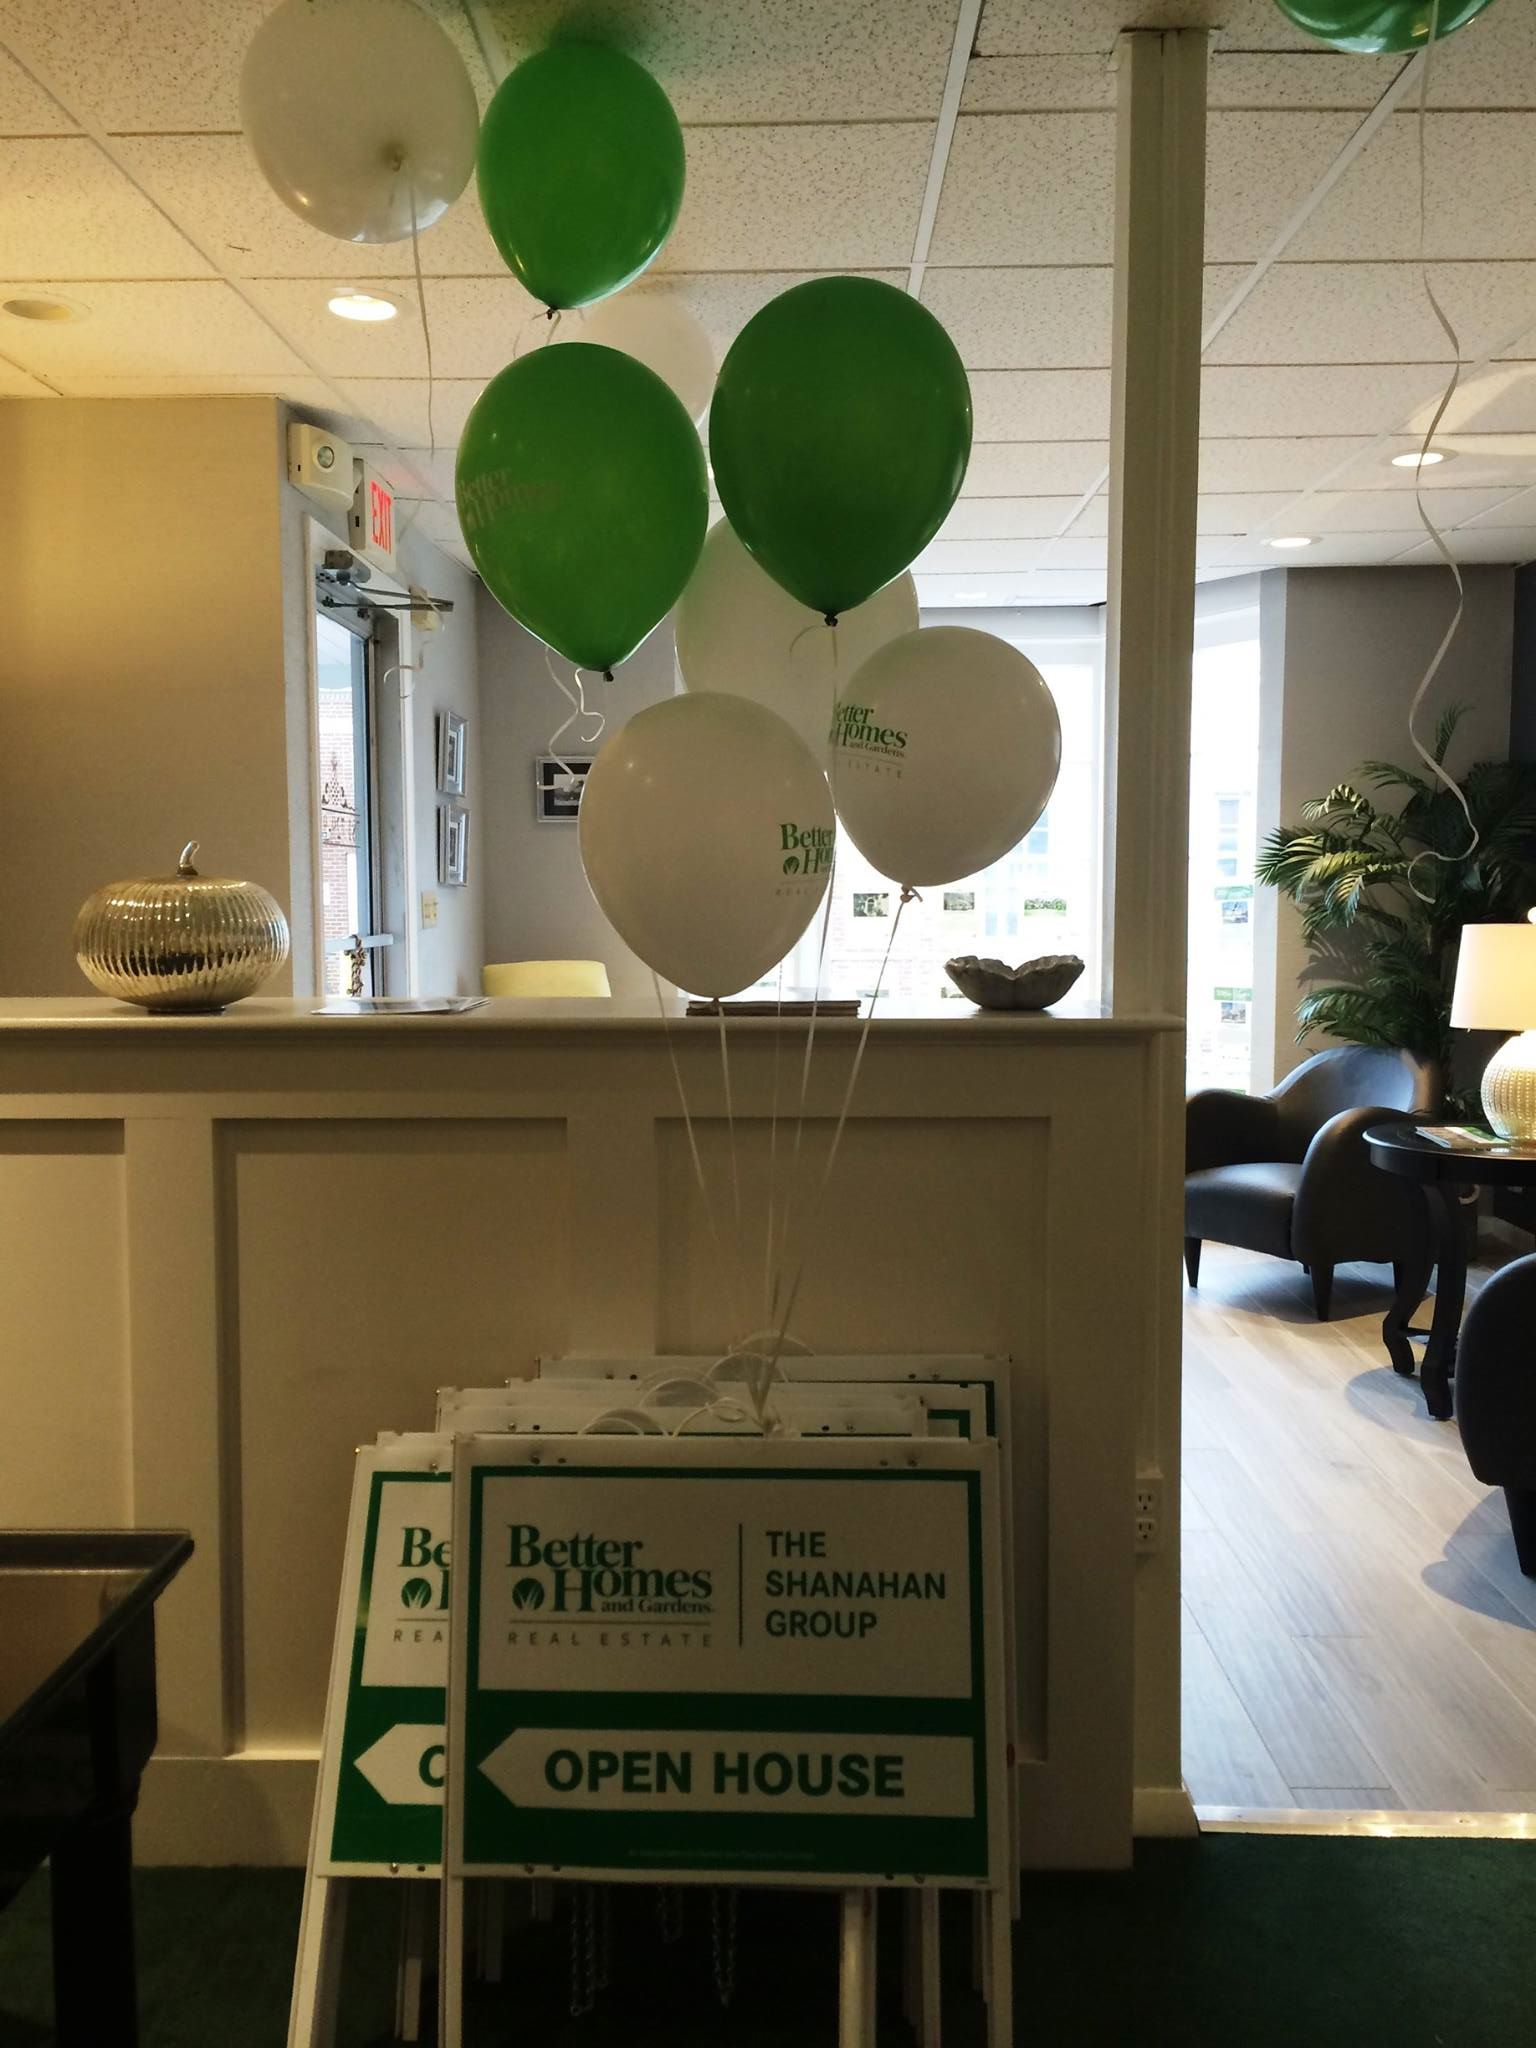 Balloons in the Office